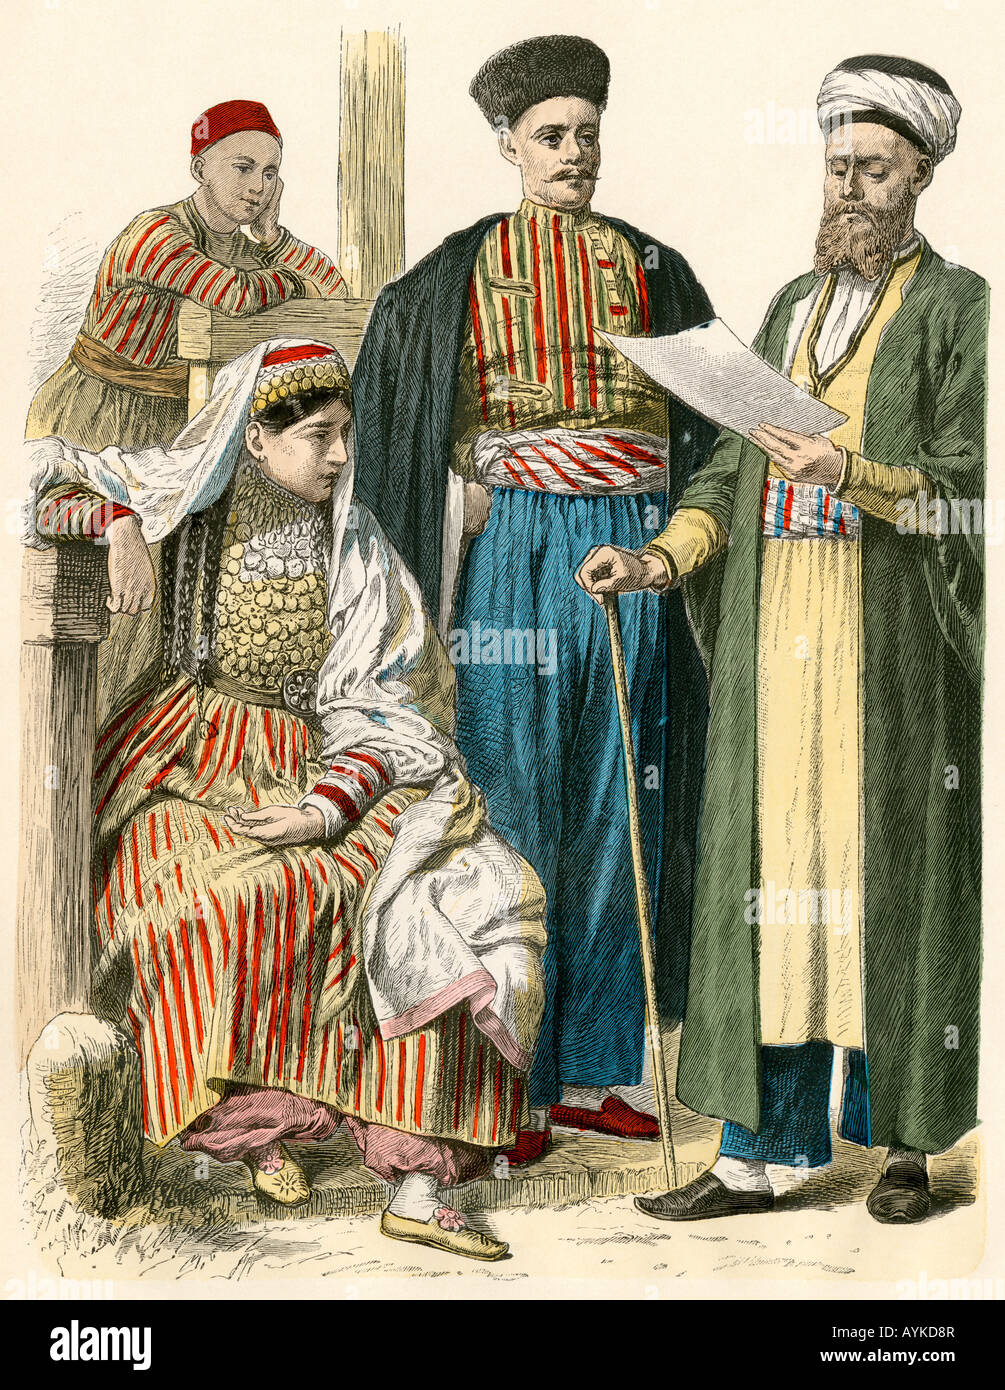 Russian Tartars from the Crimea in their native attire. Hand-colored print - Stock Image